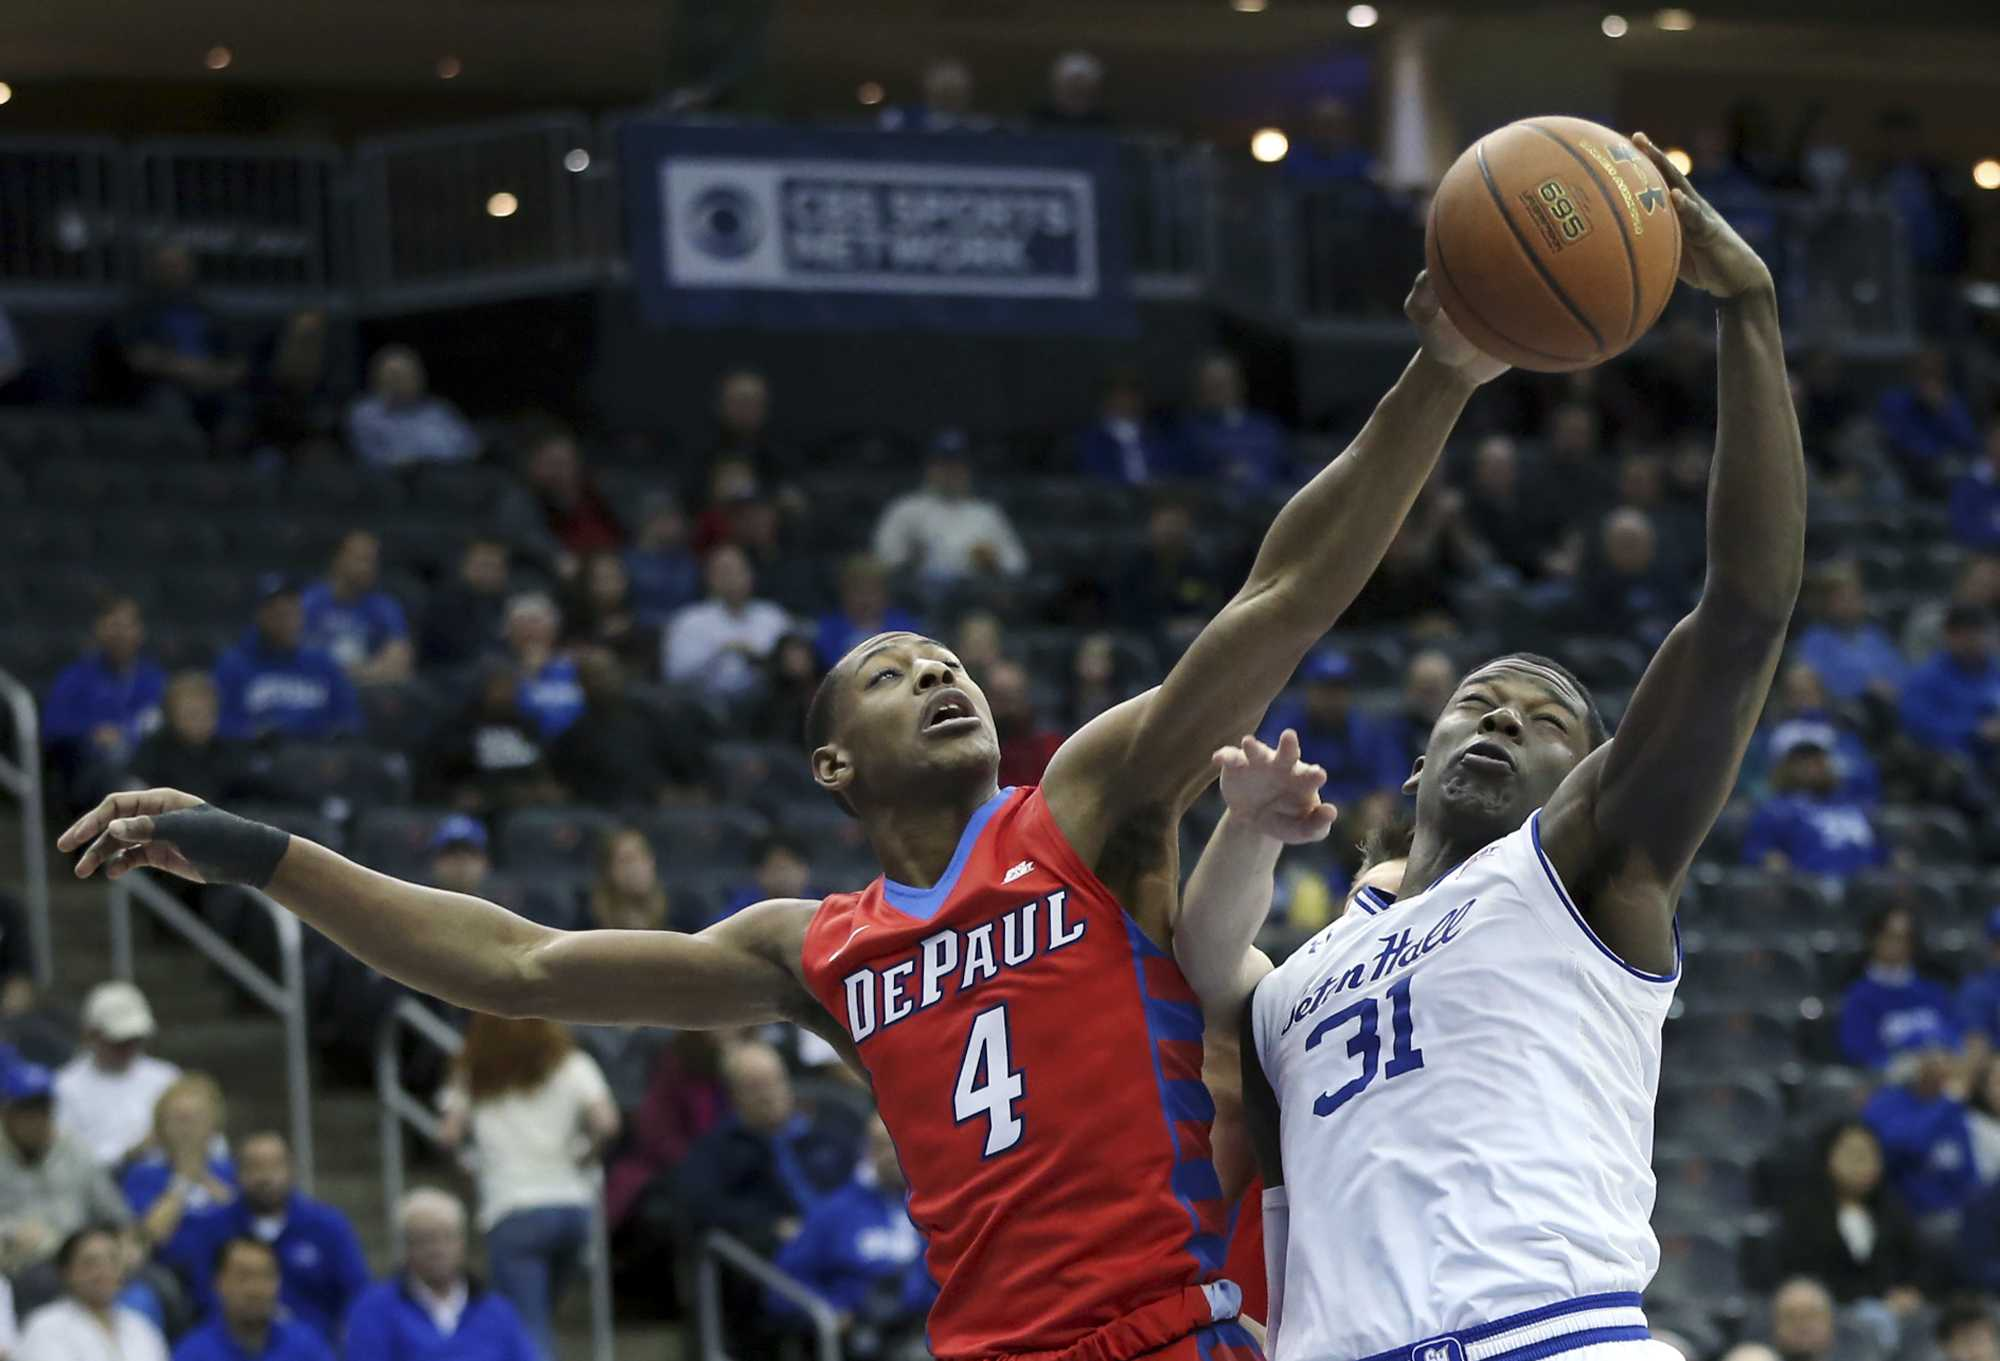 DePaul guard Brandon Cyrus (4) vies for the ball with Seton Hall forward Angel Delgado (31) during the first half of an NCAA college basketball game Saturday, Jan. 7, 2017, in Newark, N.J. AP Photo/Mel Evans)